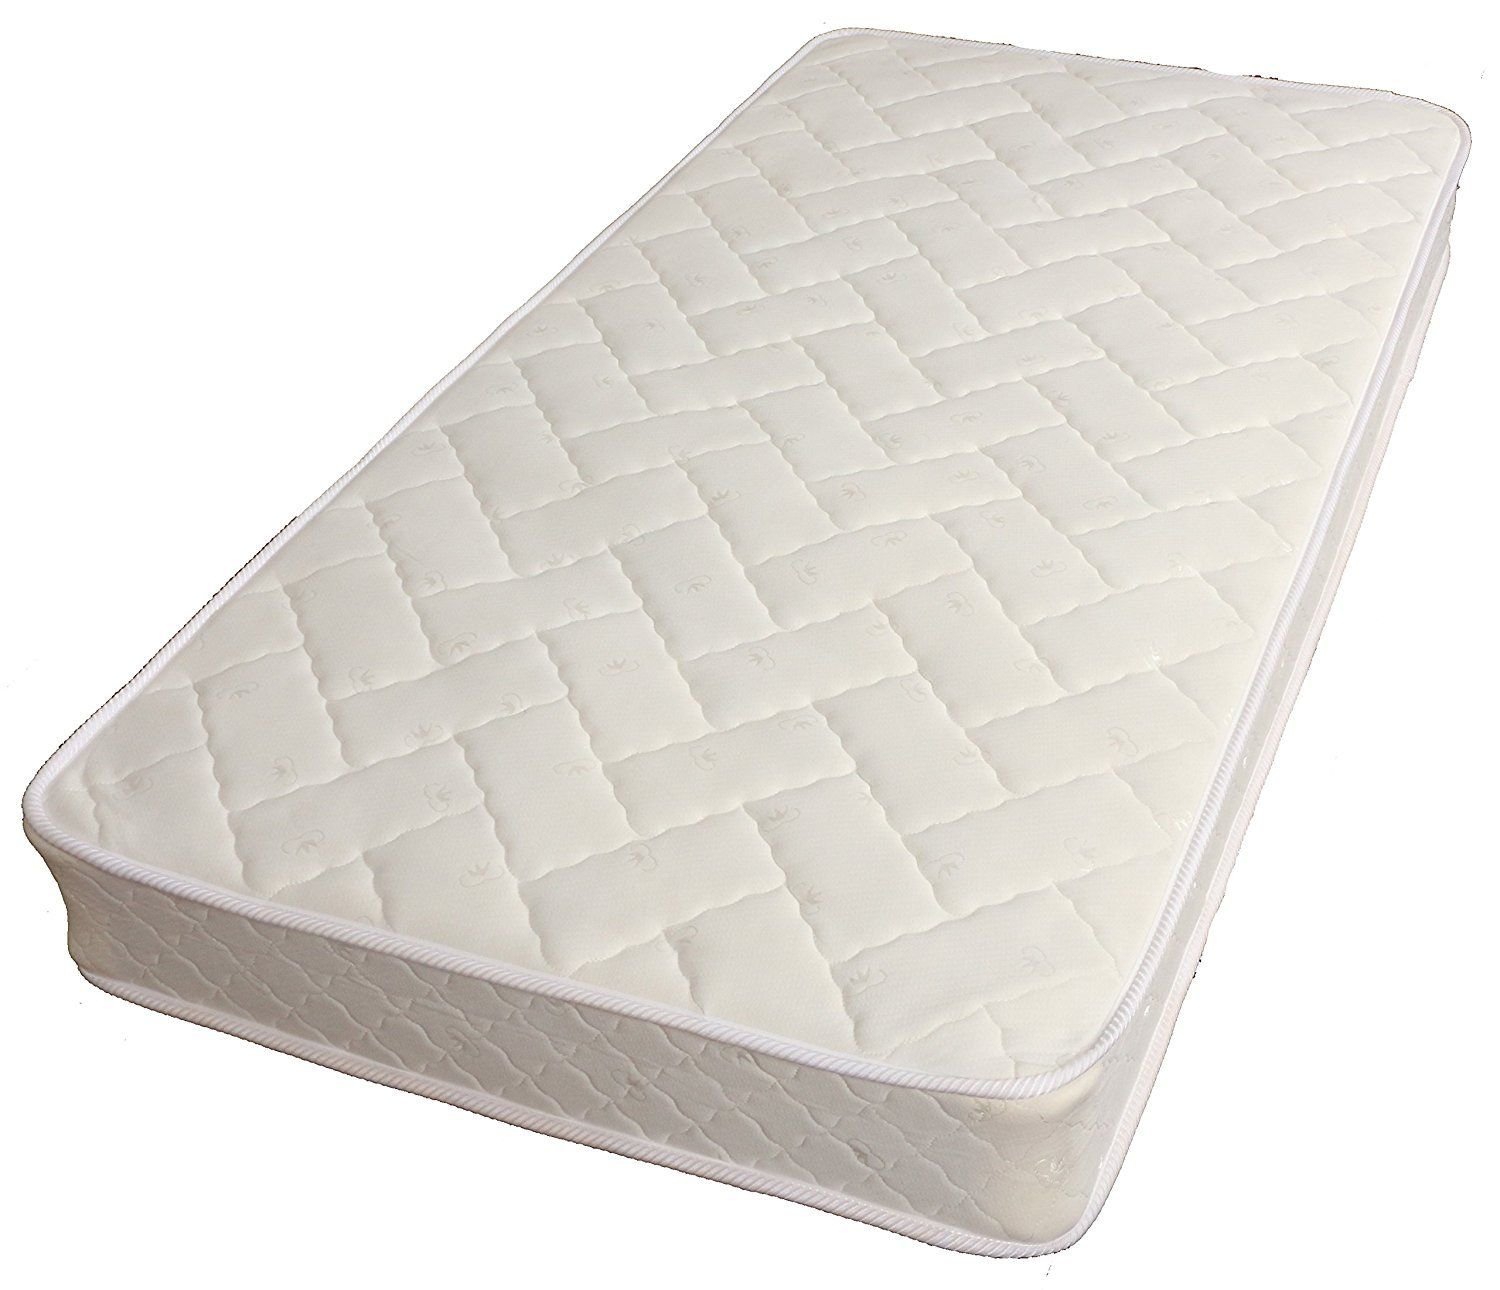 6 Inch Pocket Coil Twin Mattress Products Full Bed